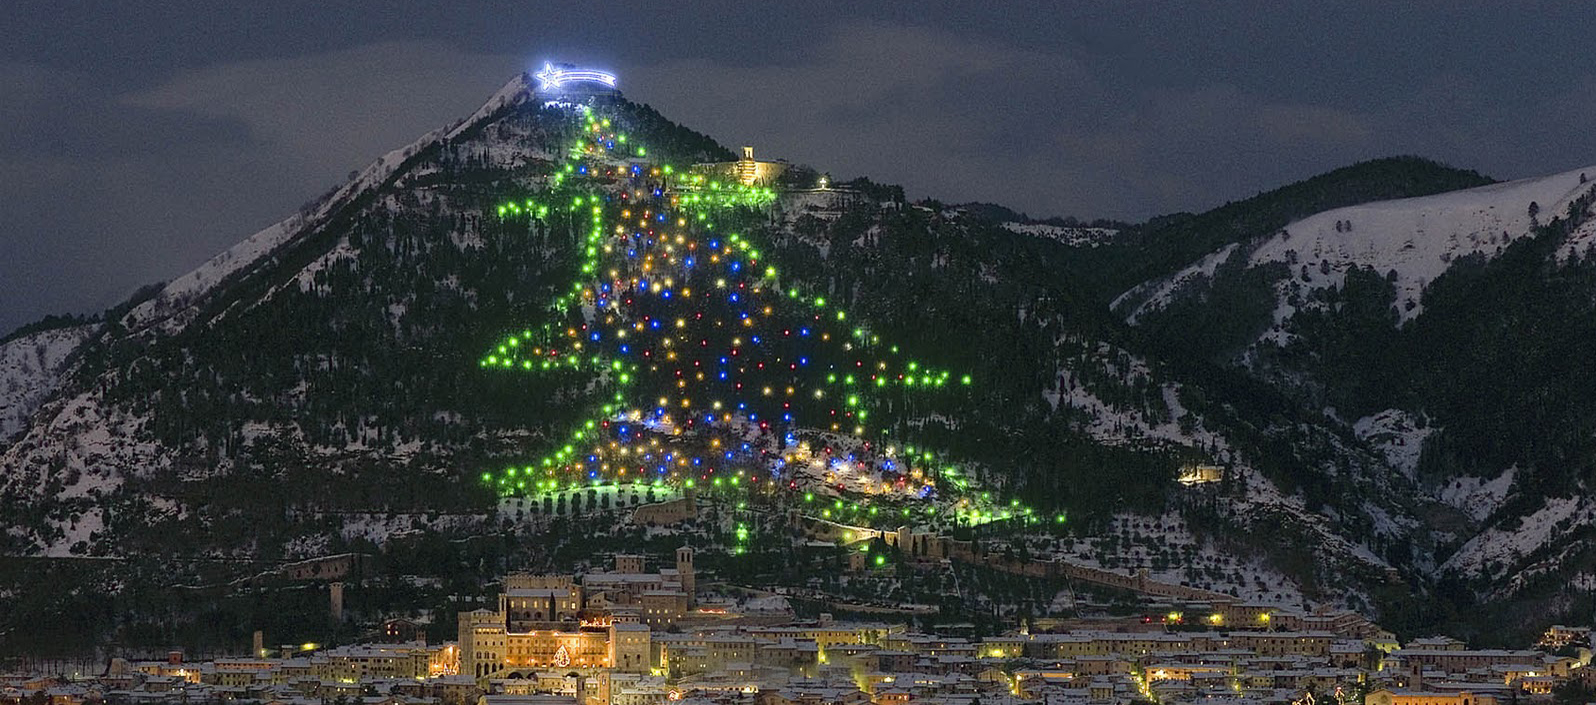 gubbio-christmas-tree.jpg